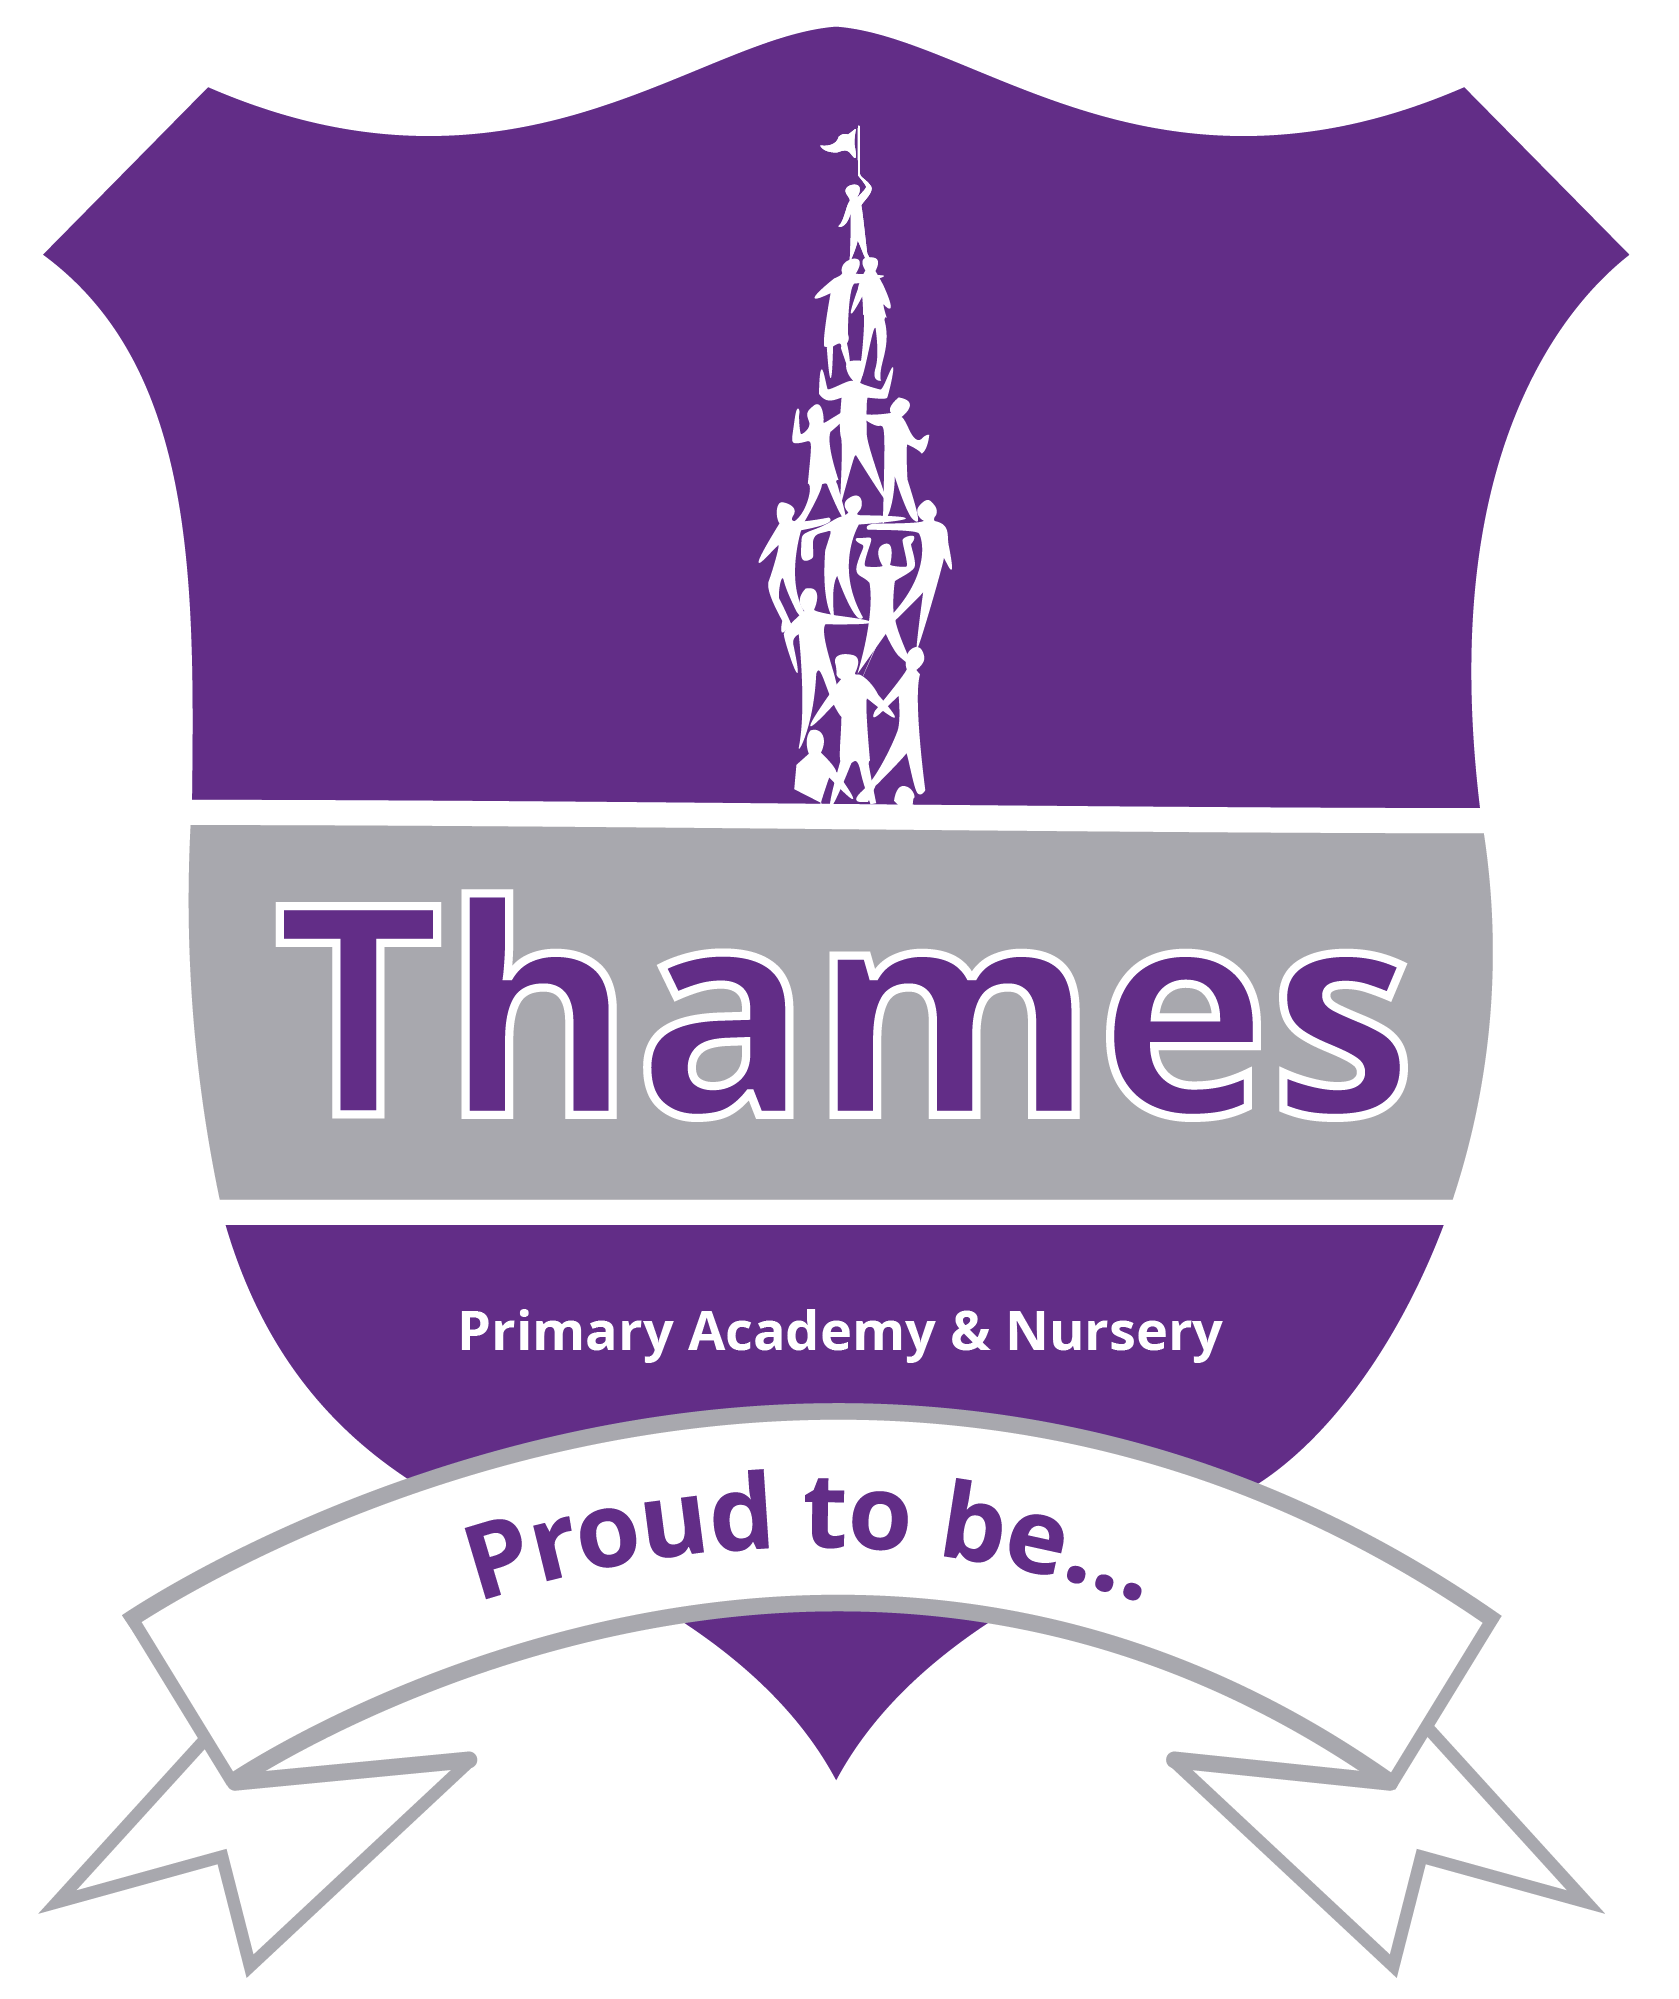 Thames Primary Academy